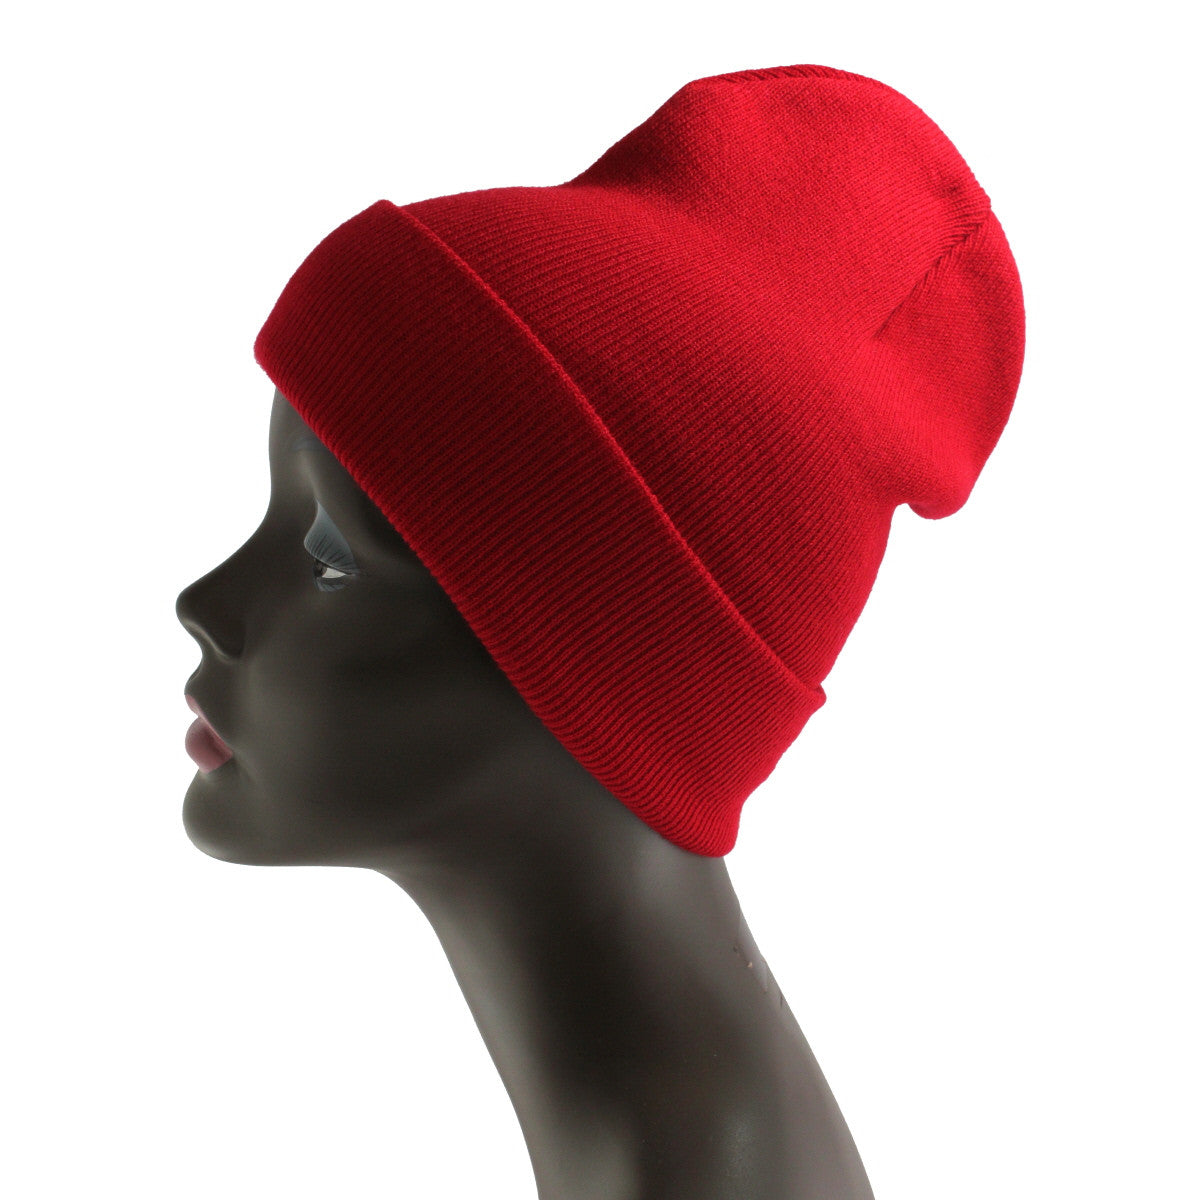 Unisex Knitted Red Beanie Hat-One Size